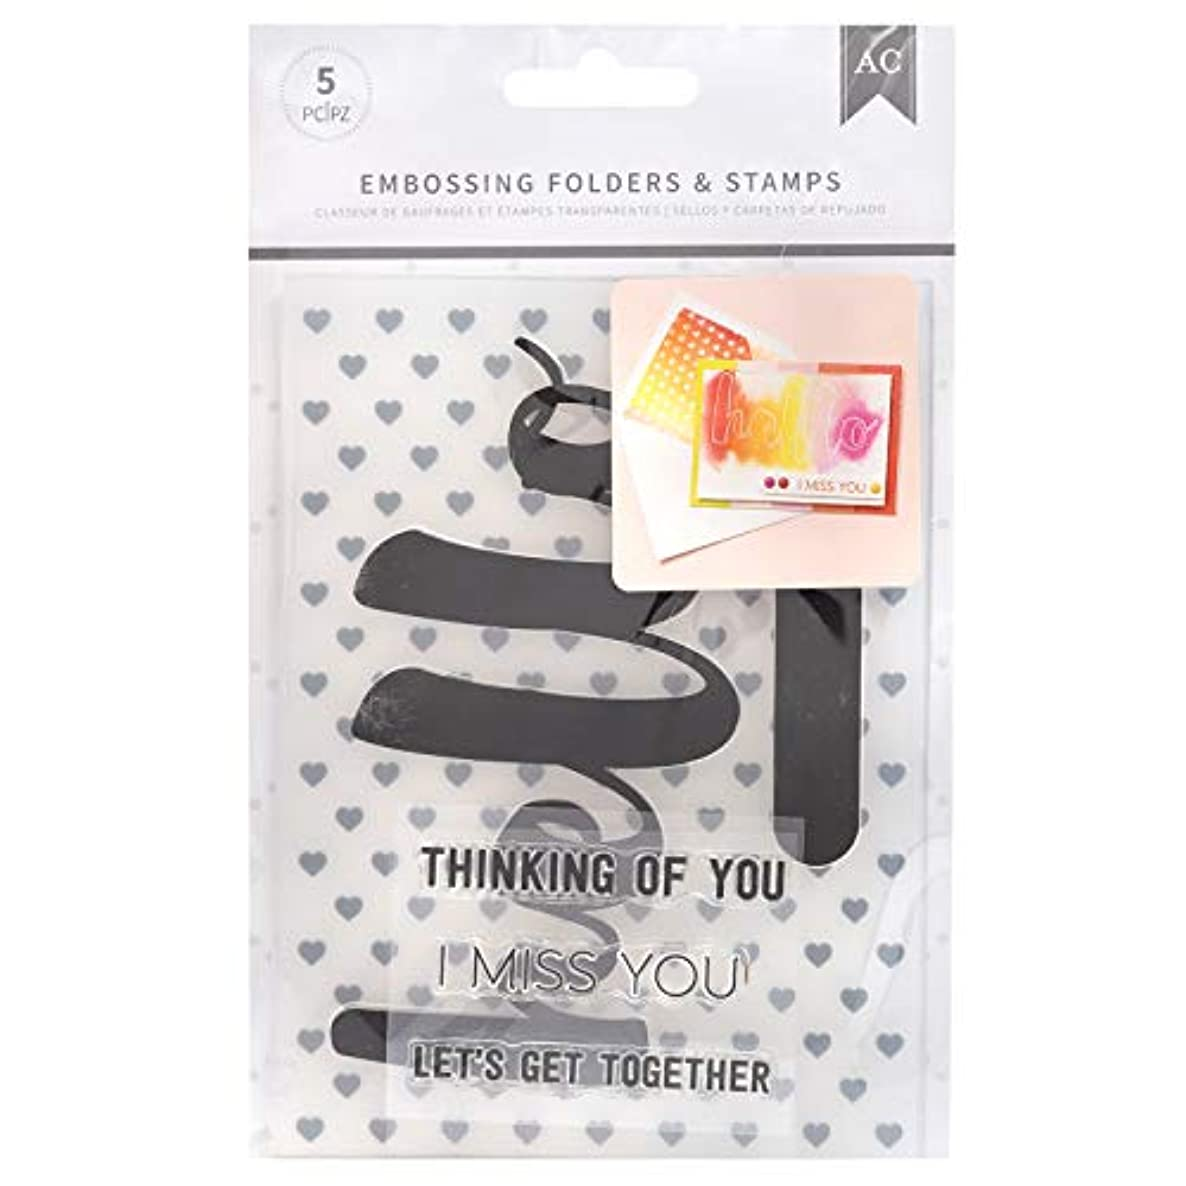 American Crafts 352086 Hello You Embossing Folders and Stamps, Multi